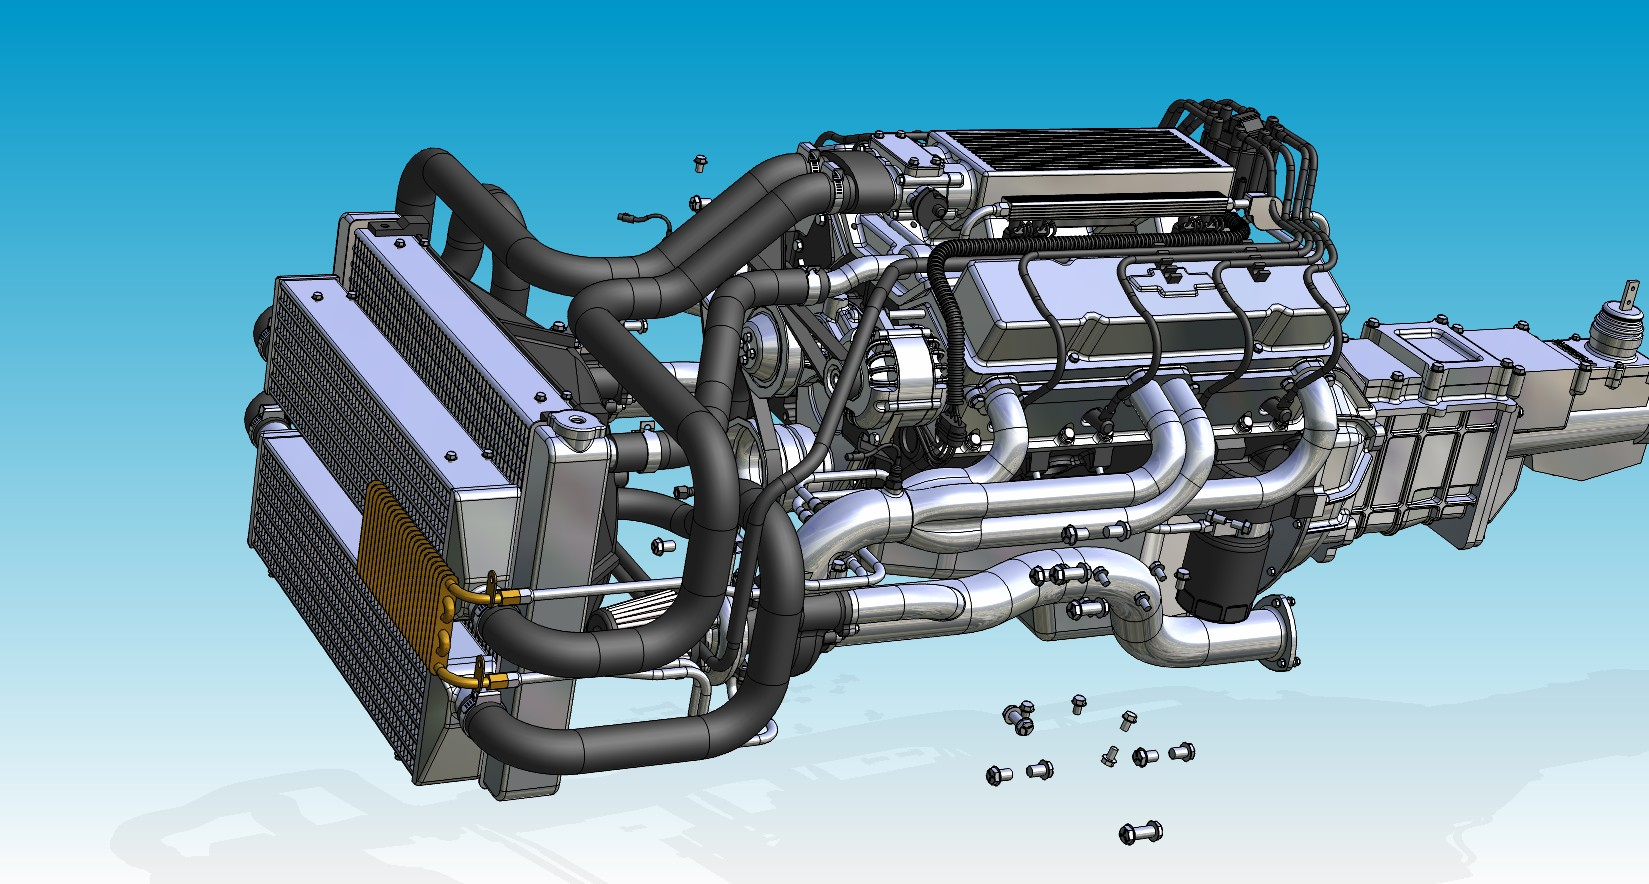 Turbo 350 C Wiring Diagram Free Download Wiring Diagrams Pictures